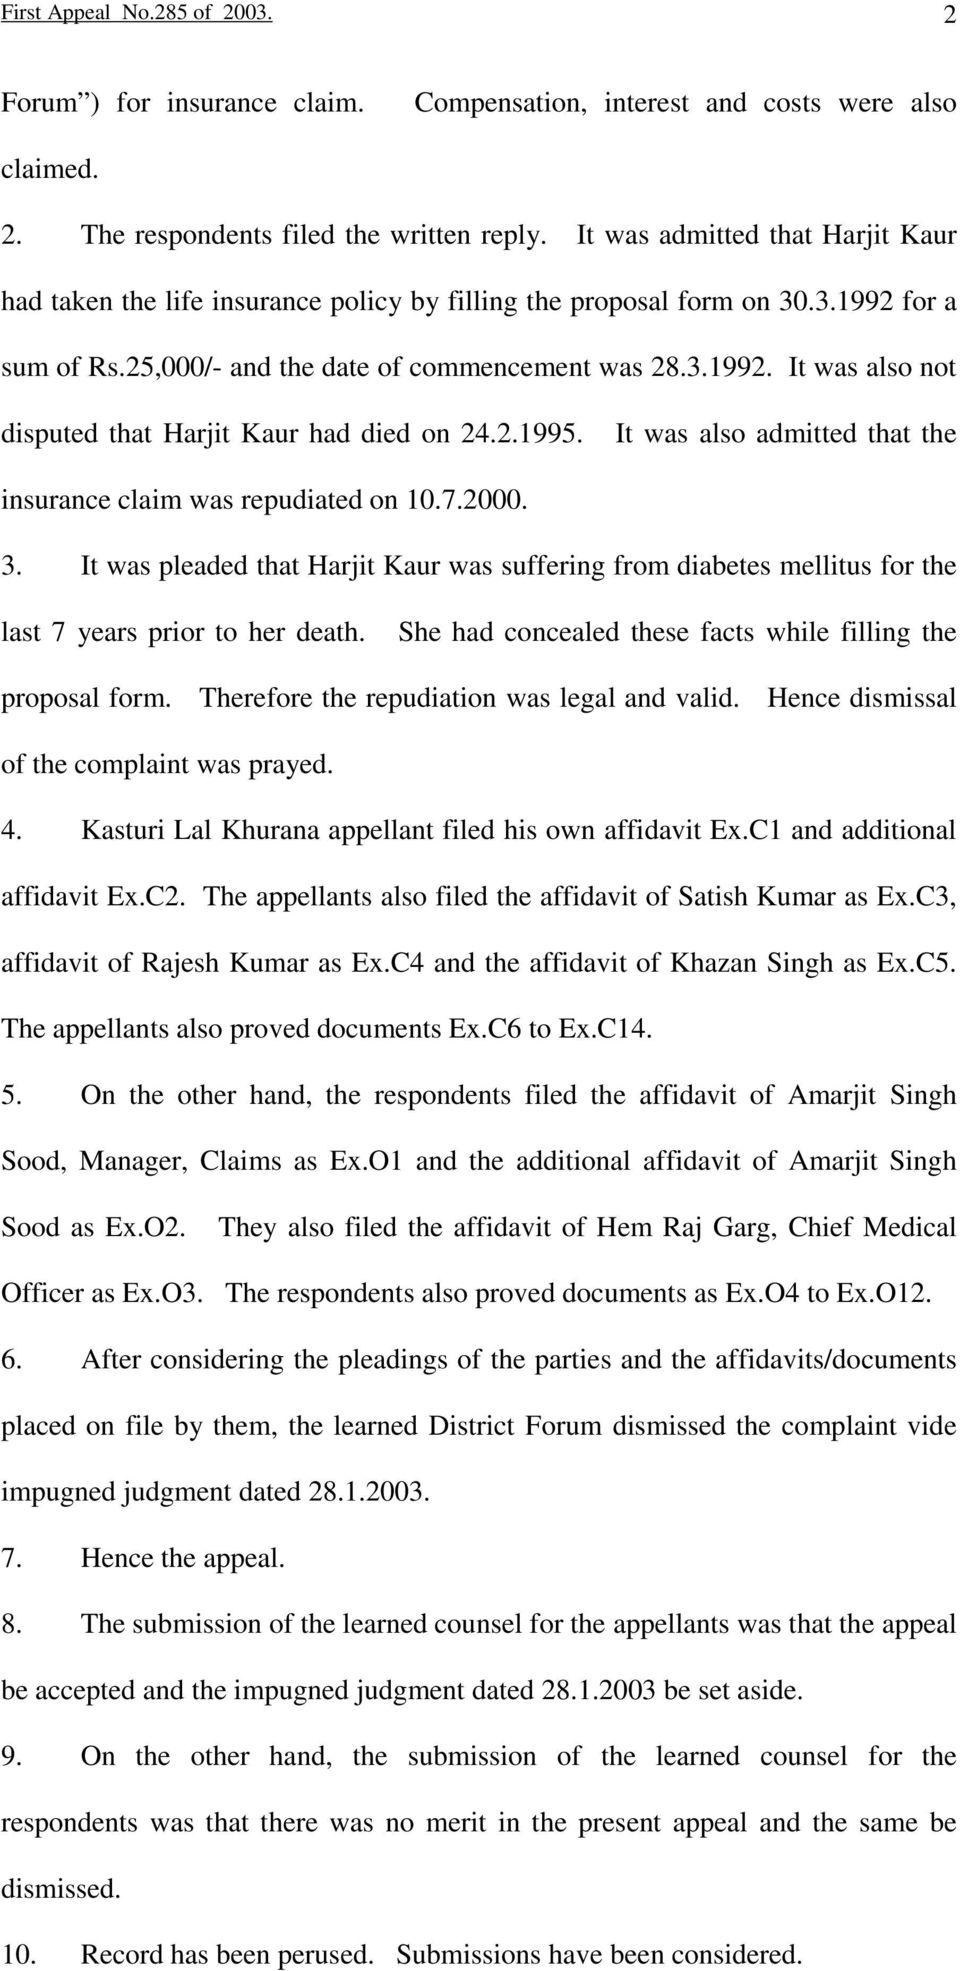 2.1995. It was also admitted that the insurance claim was repudiated on 10.7.2000. 3. It was pleaded that Harjit Kaur was suffering from diabetes mellitus for the last 7 years prior to her death.